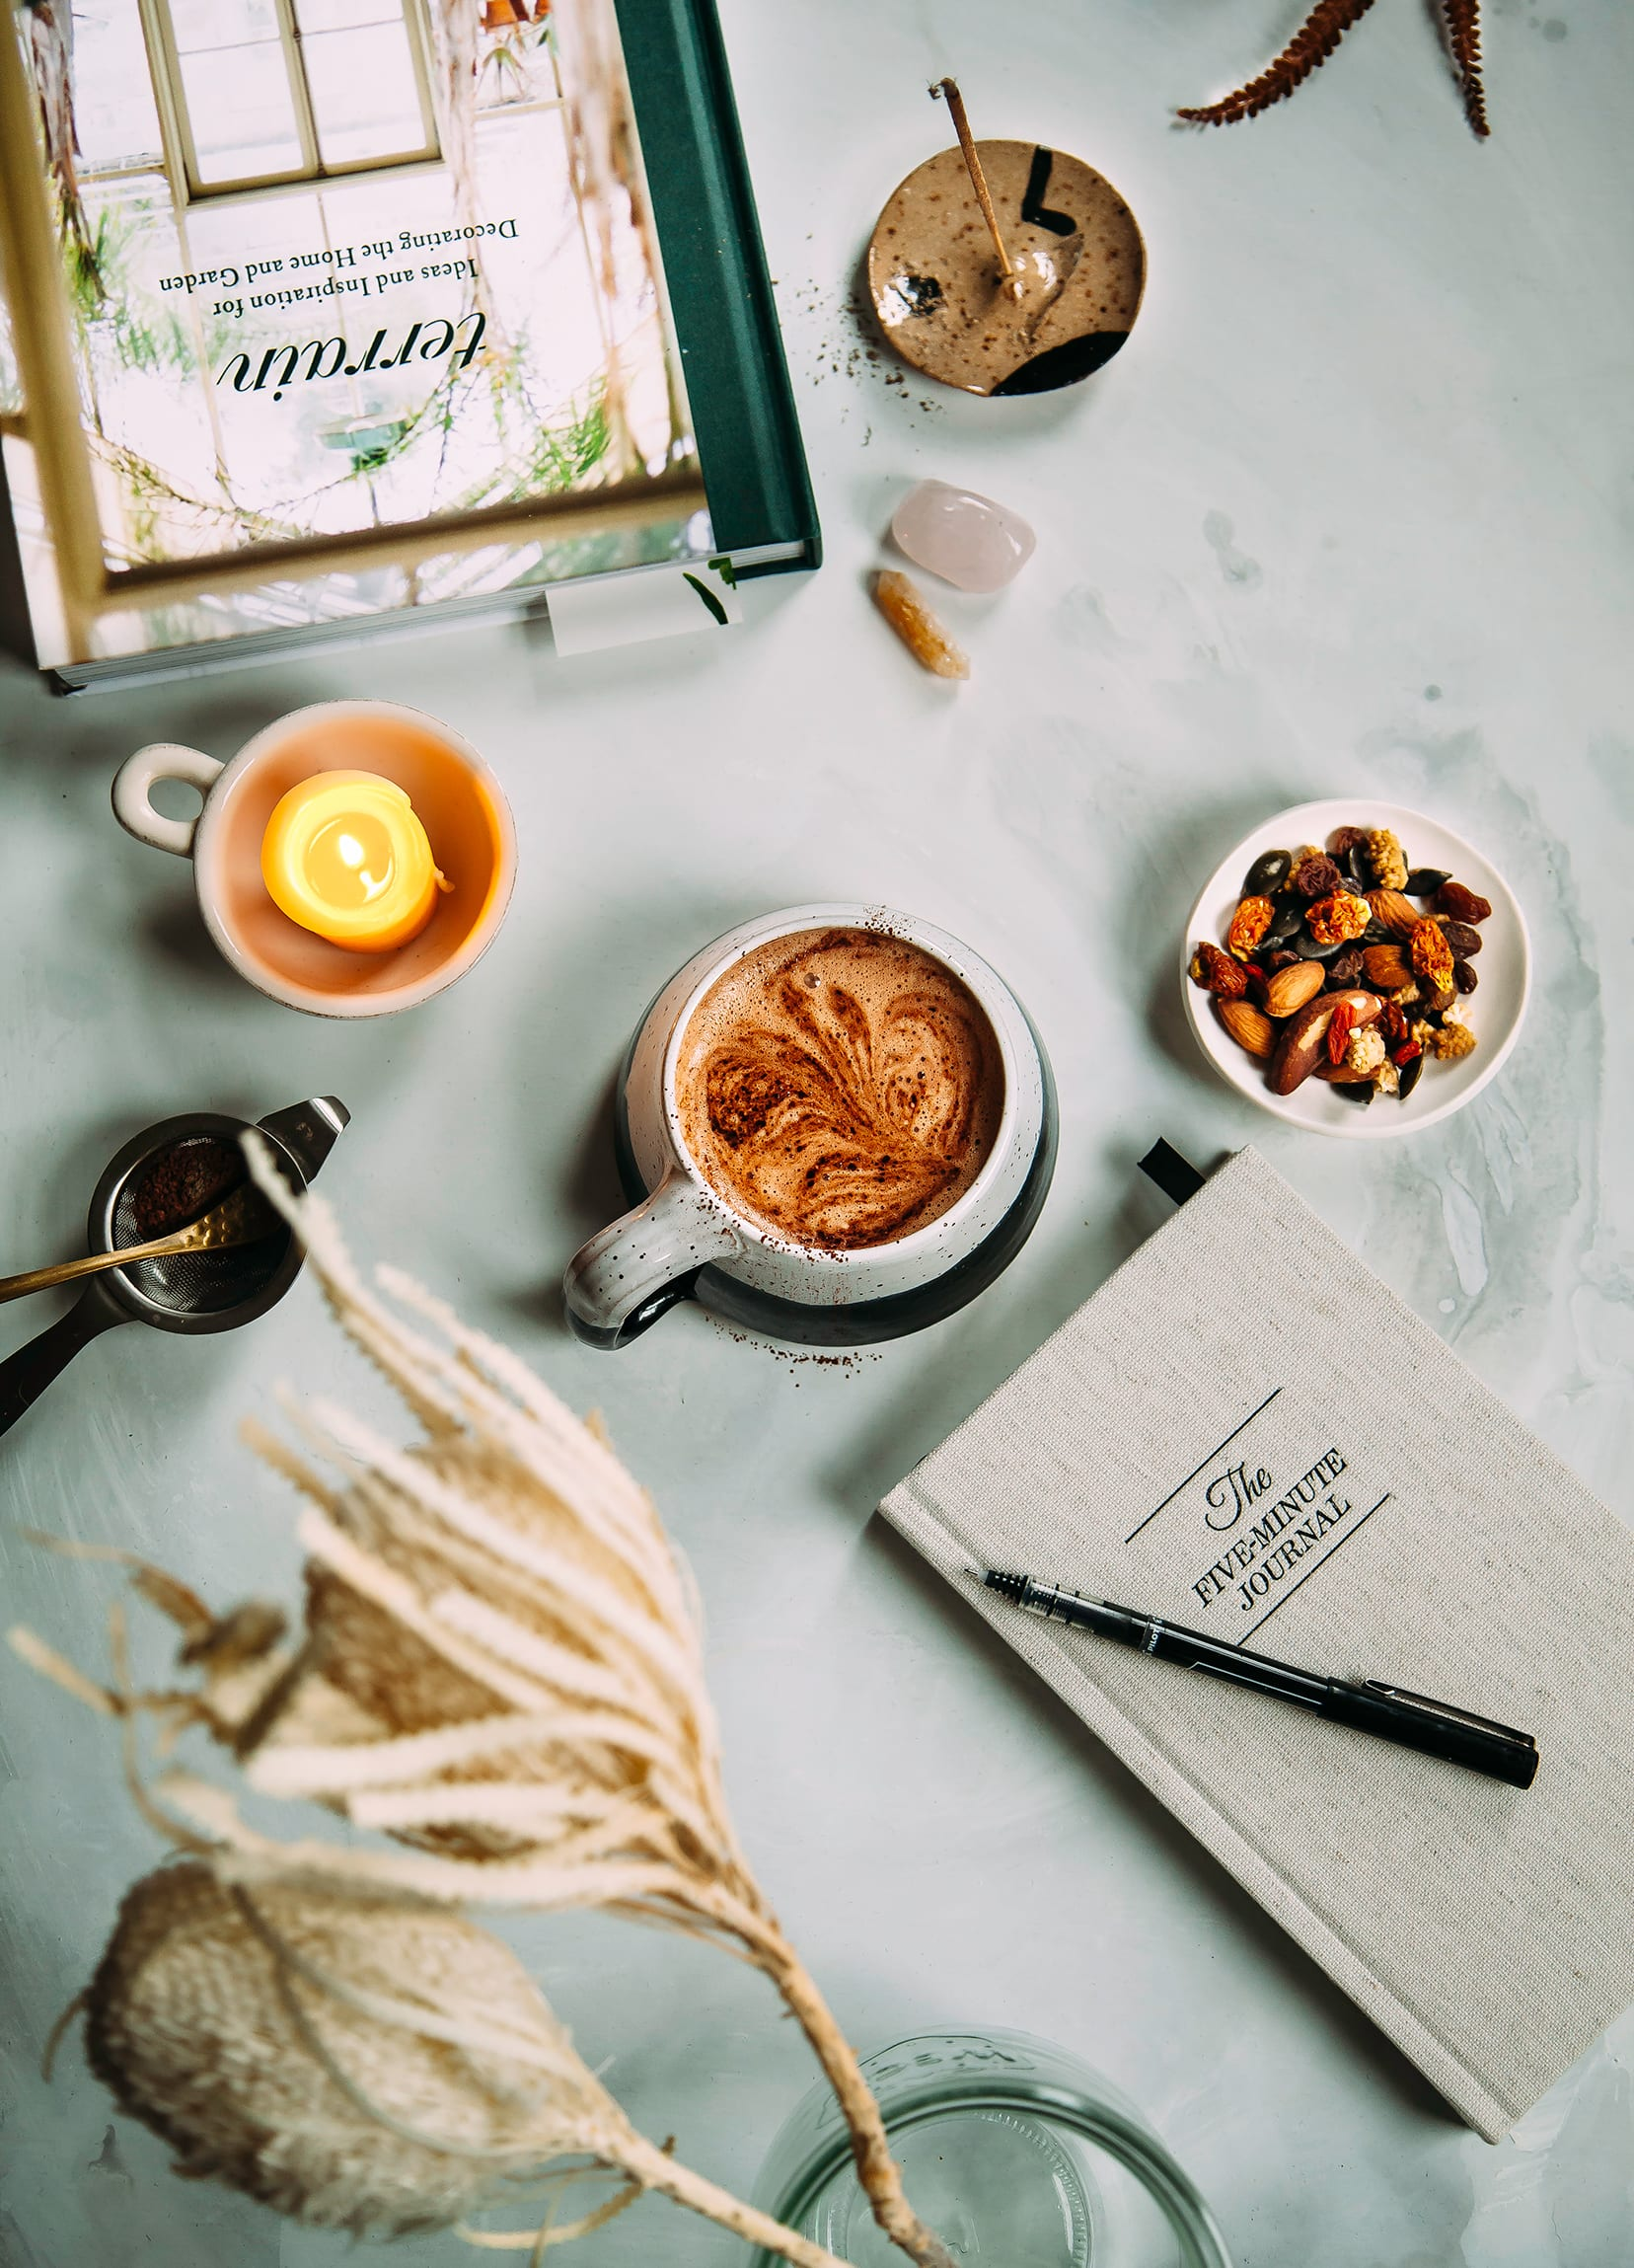 Overhead image shows a cup of hot cocoa, a lit candle, a book, a notebook, and a tray of trail mix.